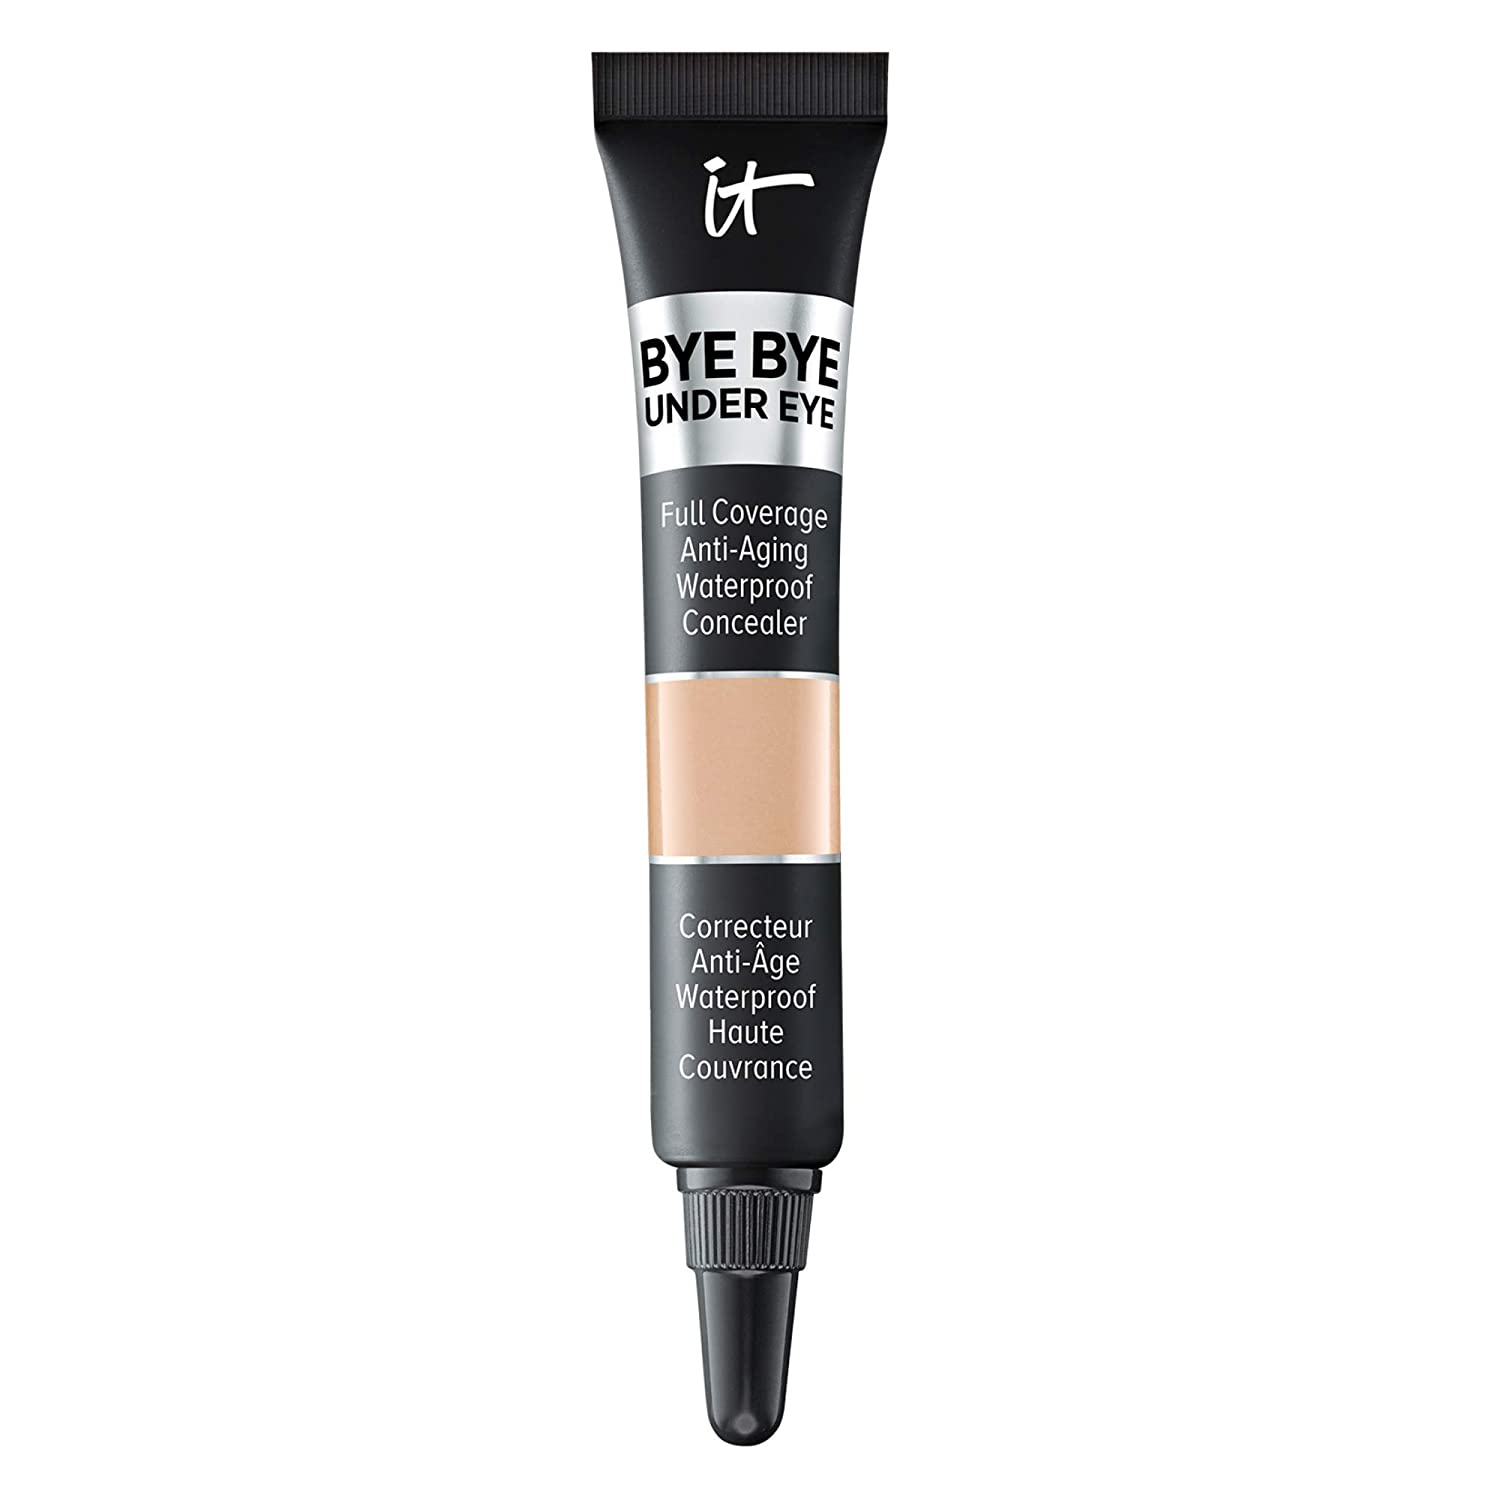 IT Cosmetics Bye Bye Under Eye, 13.0 Light Natural (N) - Travel Size - Full-Coverage, Anti-Aging, Waterproof Concealer - Improves the Appearance of Dark Circles, Wrinkles & Imperfections - 0.11 fl oz